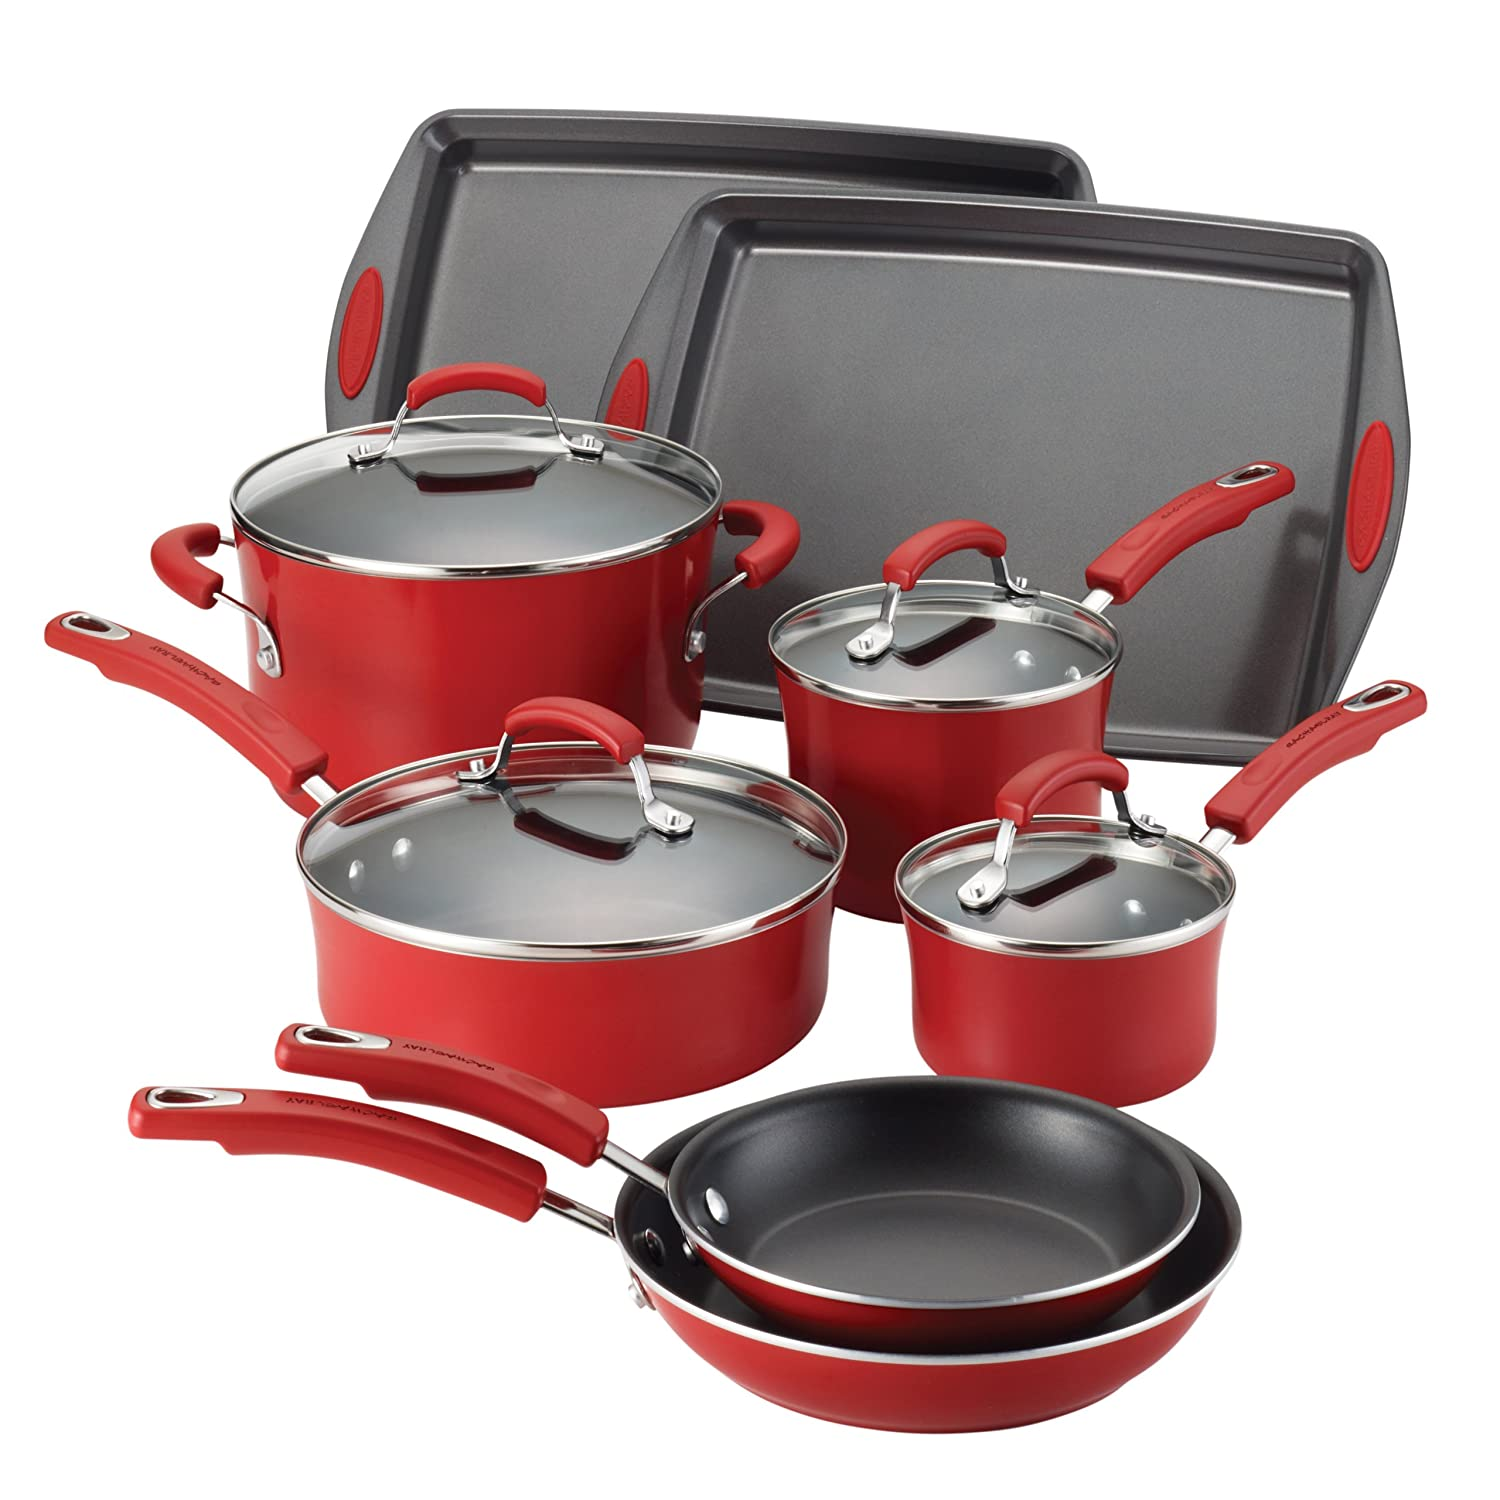 of Rachael Ray Porcelain Enamel II Nonstick 12-Piece Cookware Set Red ...